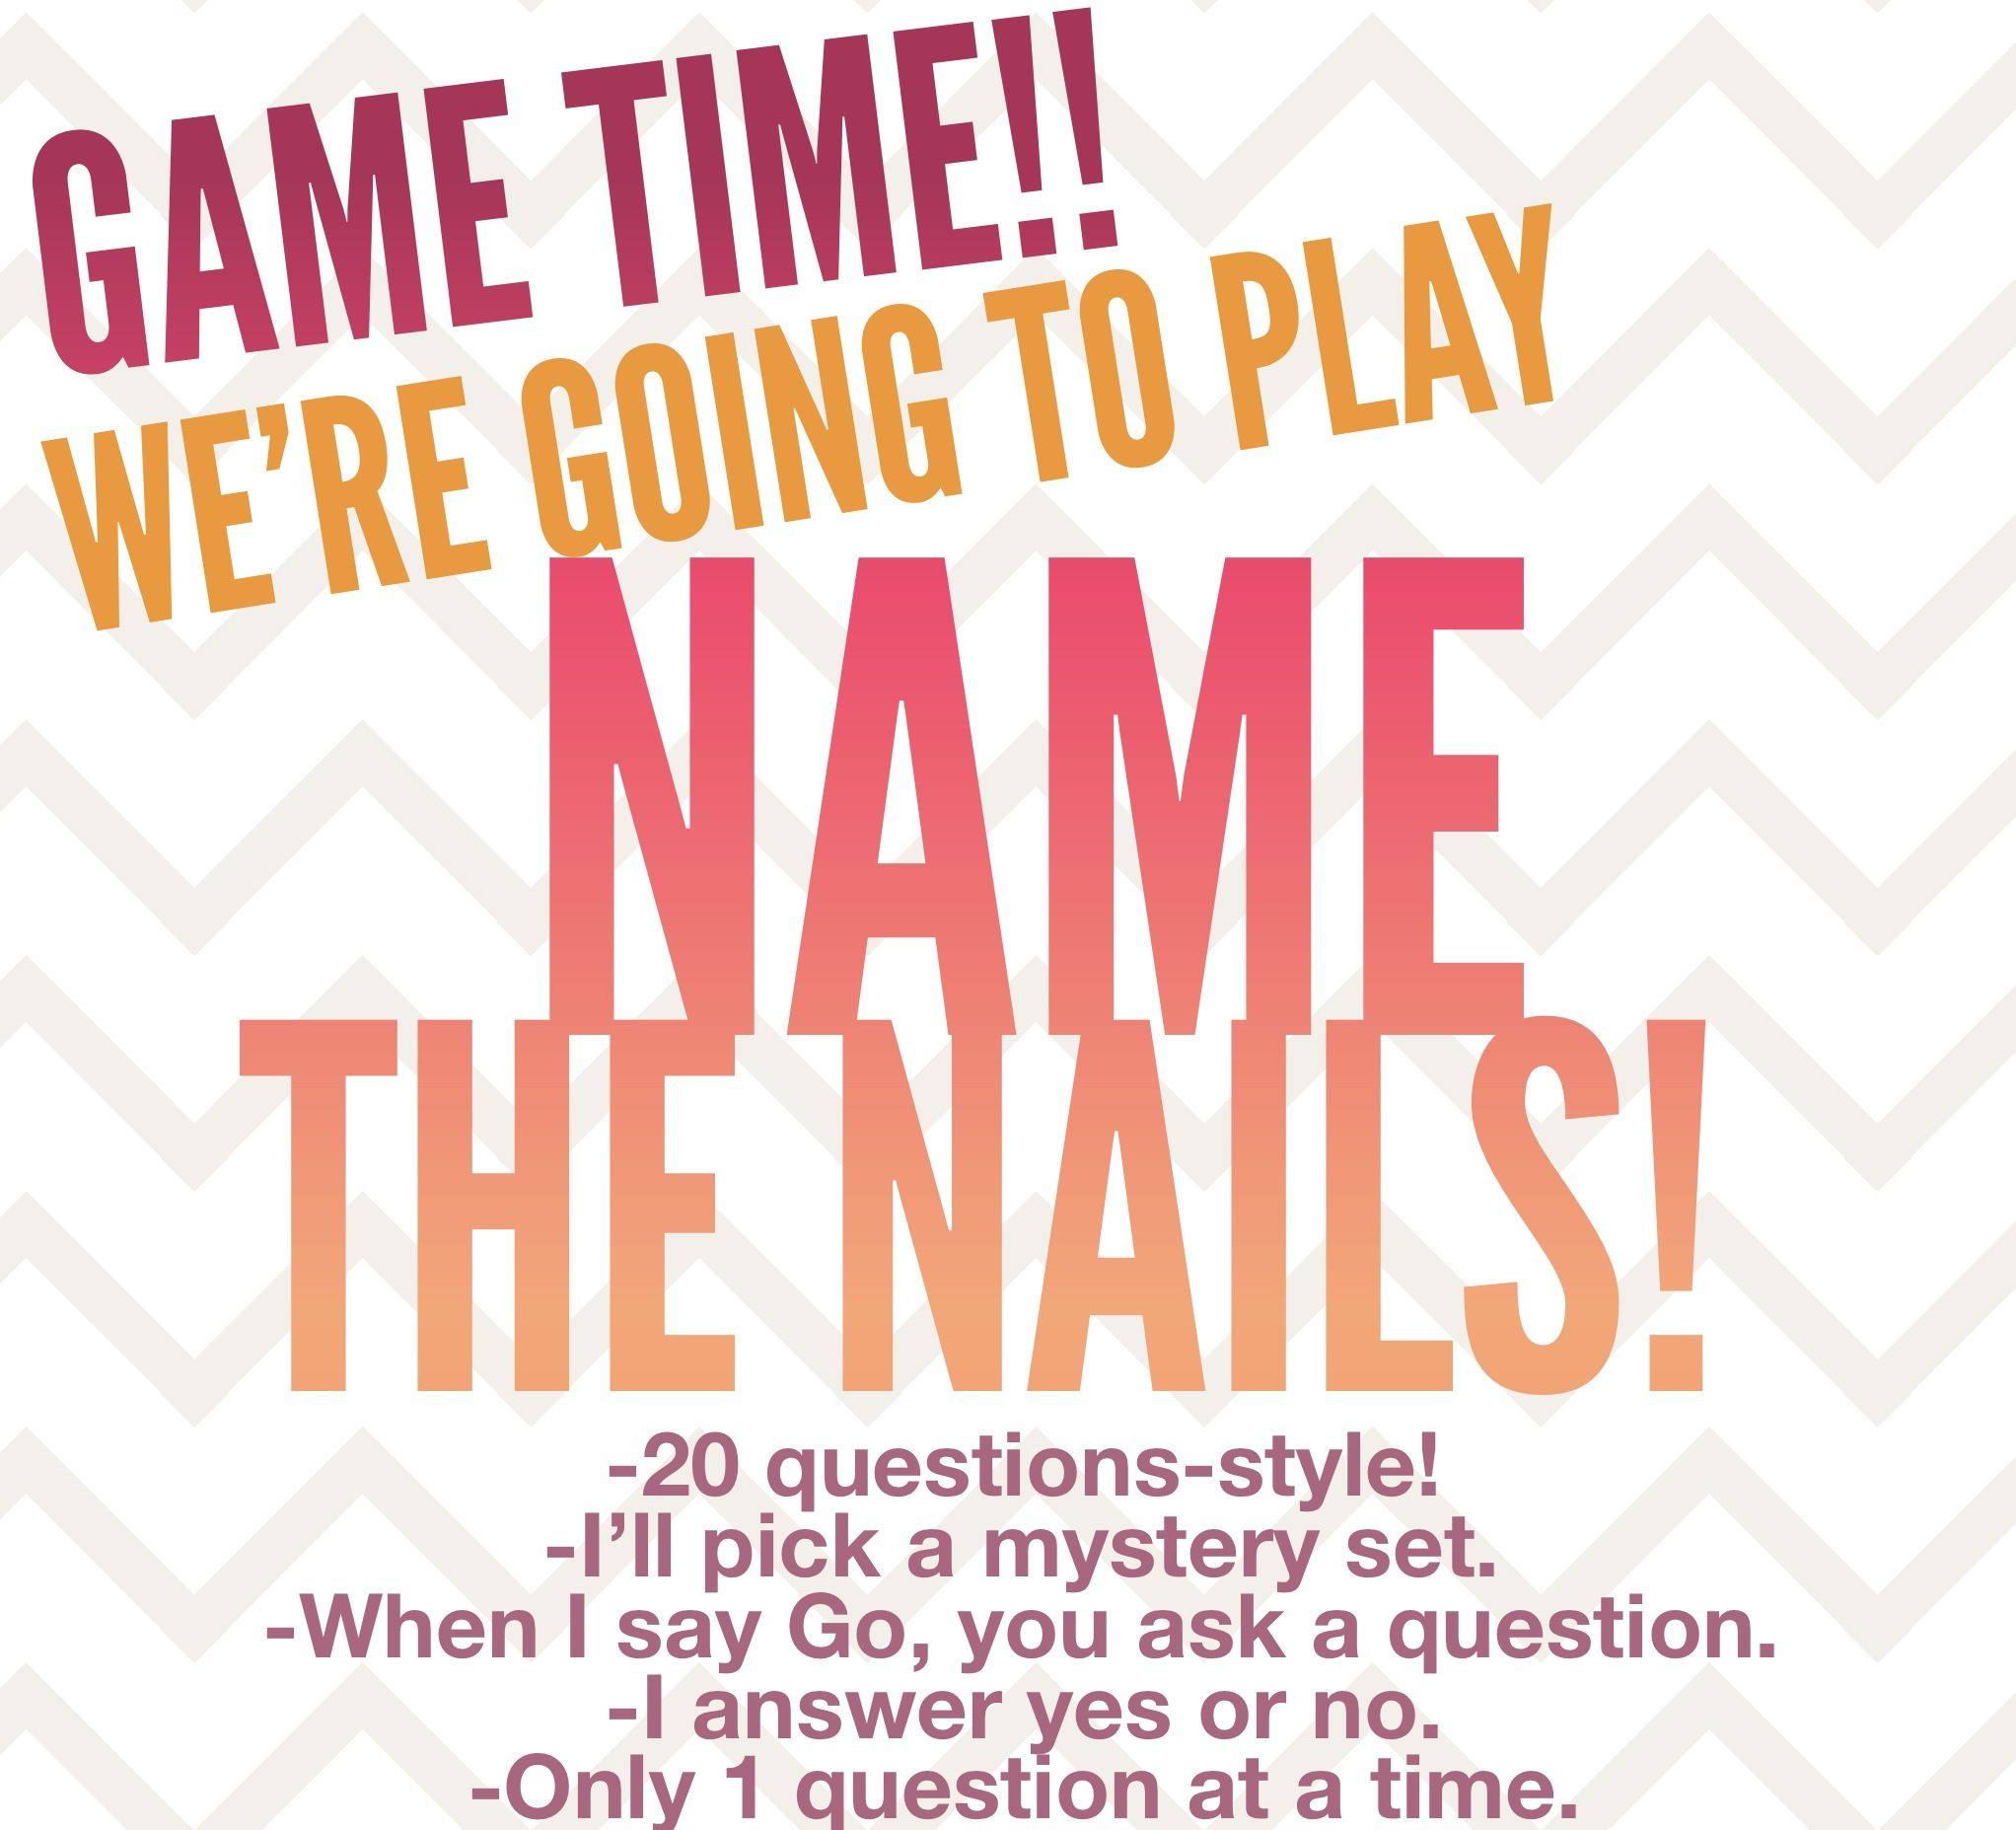 Color Street engagement game I made, giveaway nails or